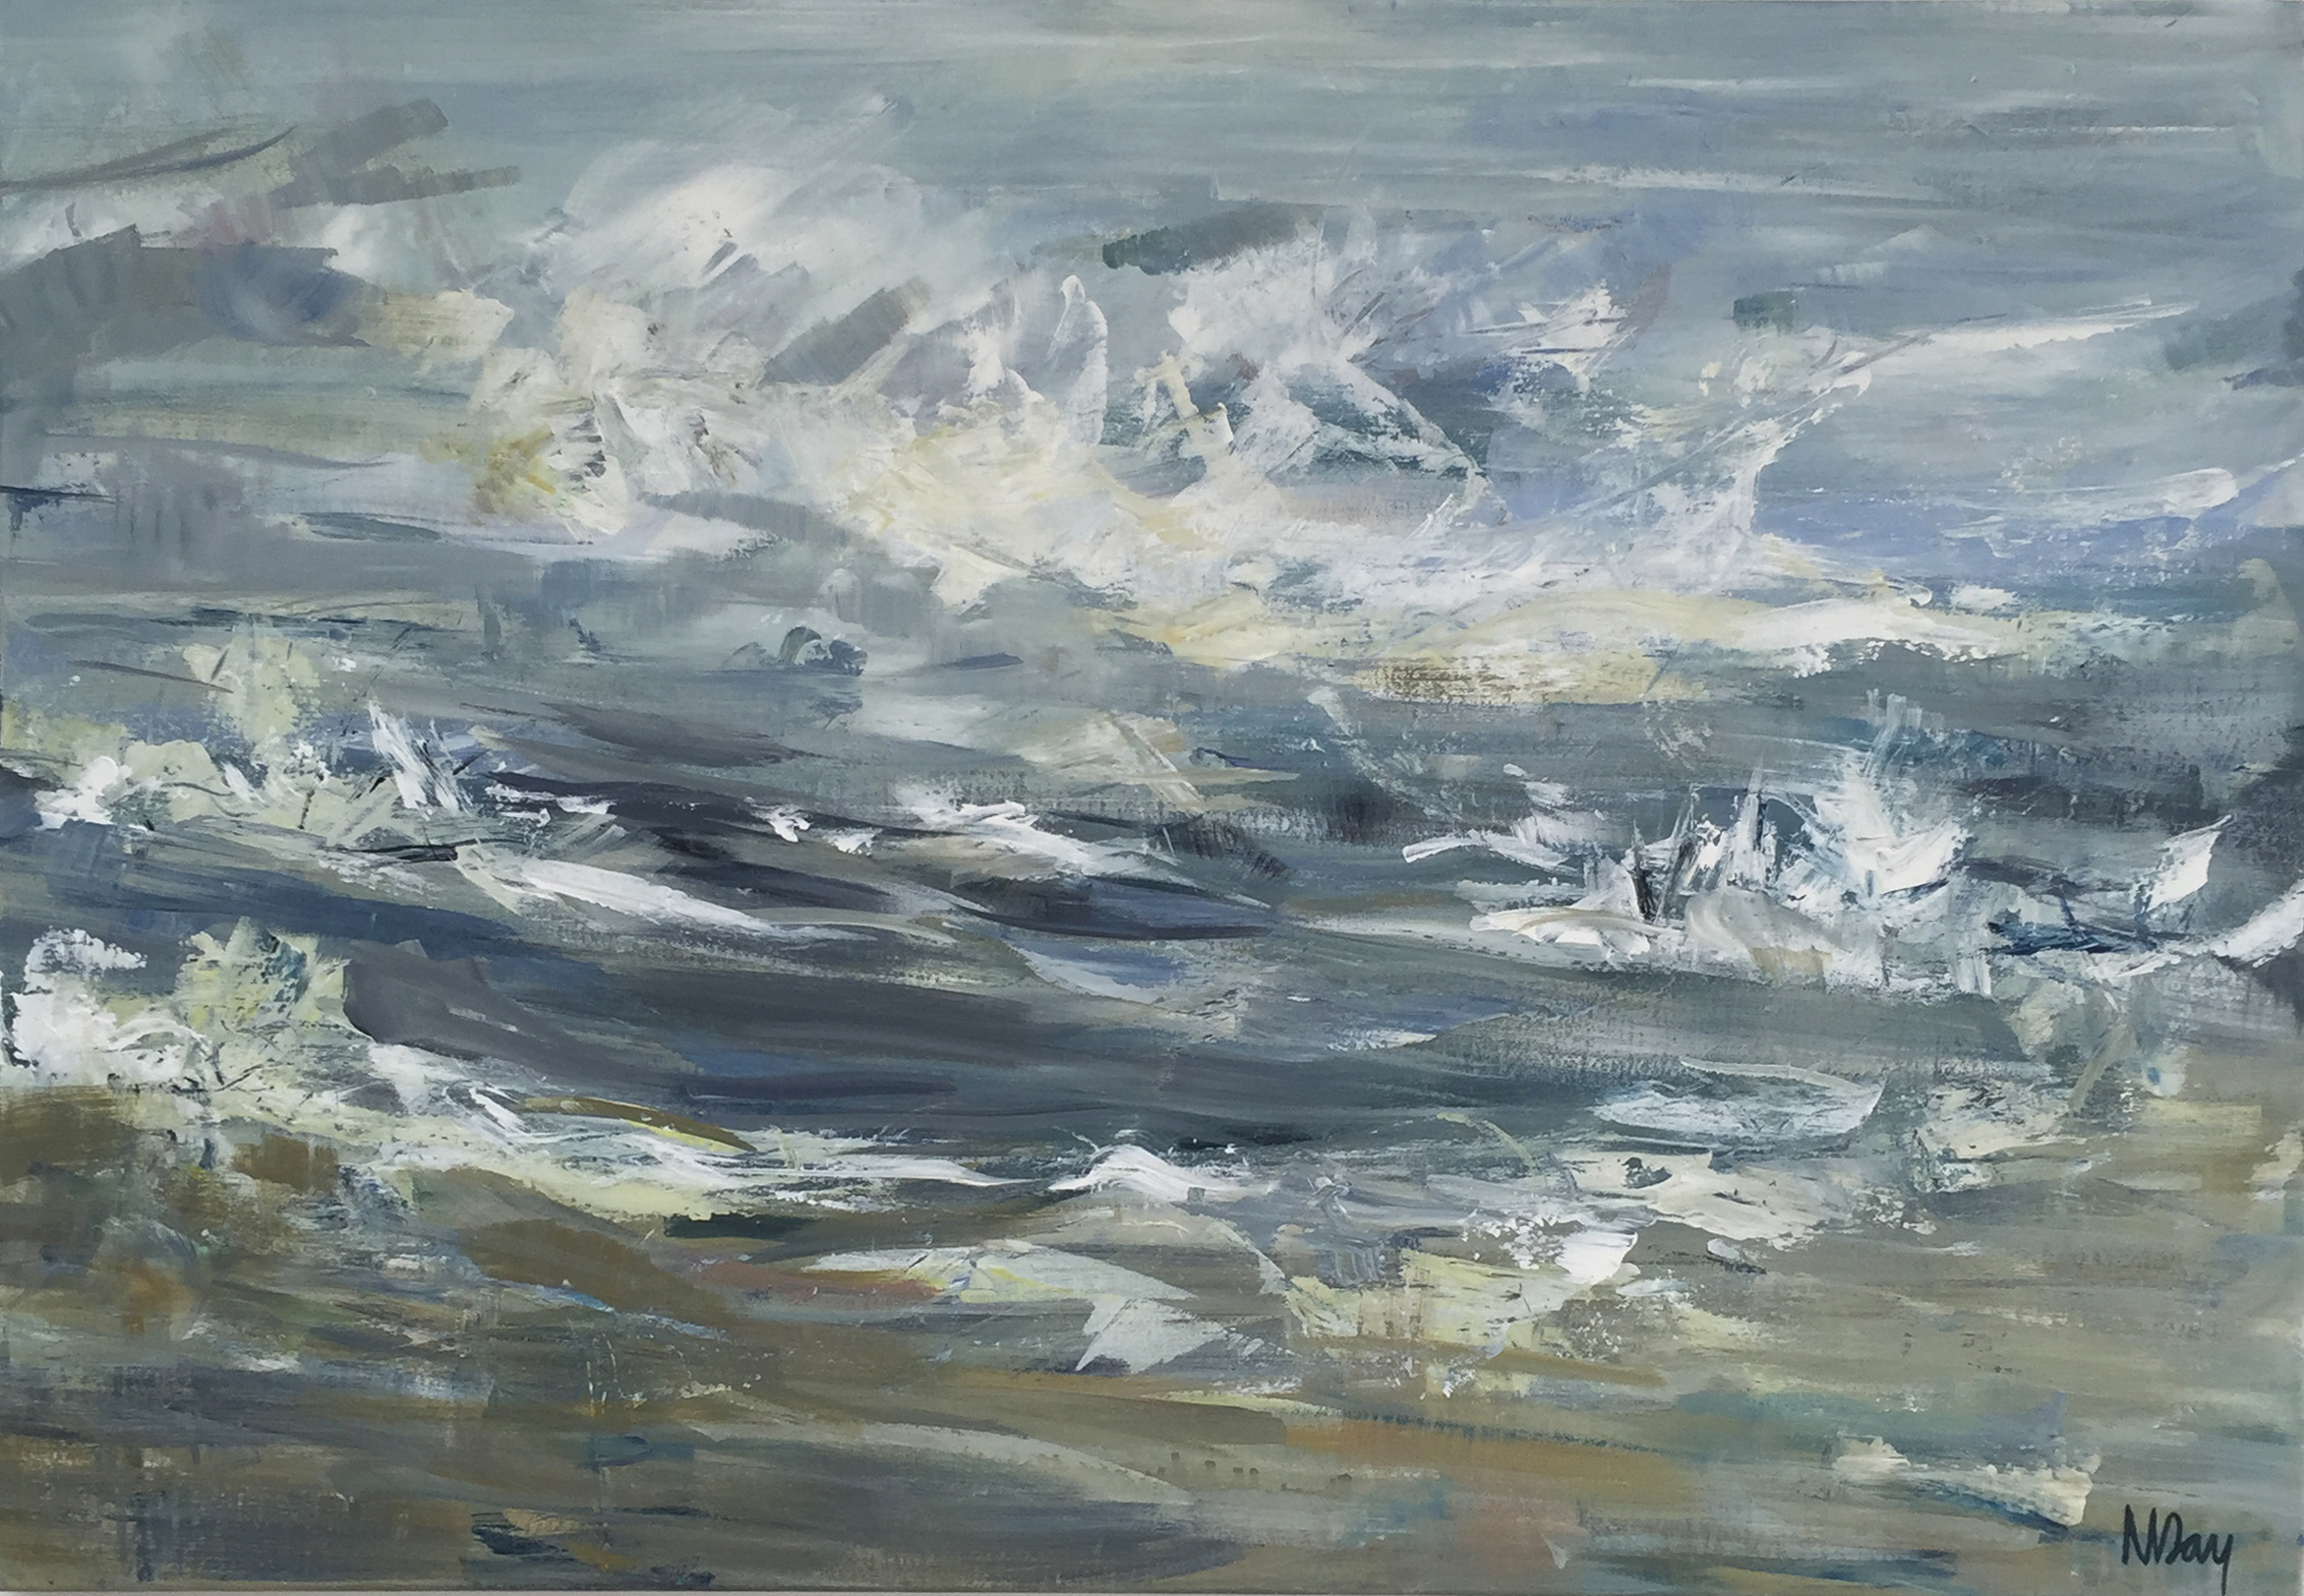 big-swell-ii-100x70-acrylic